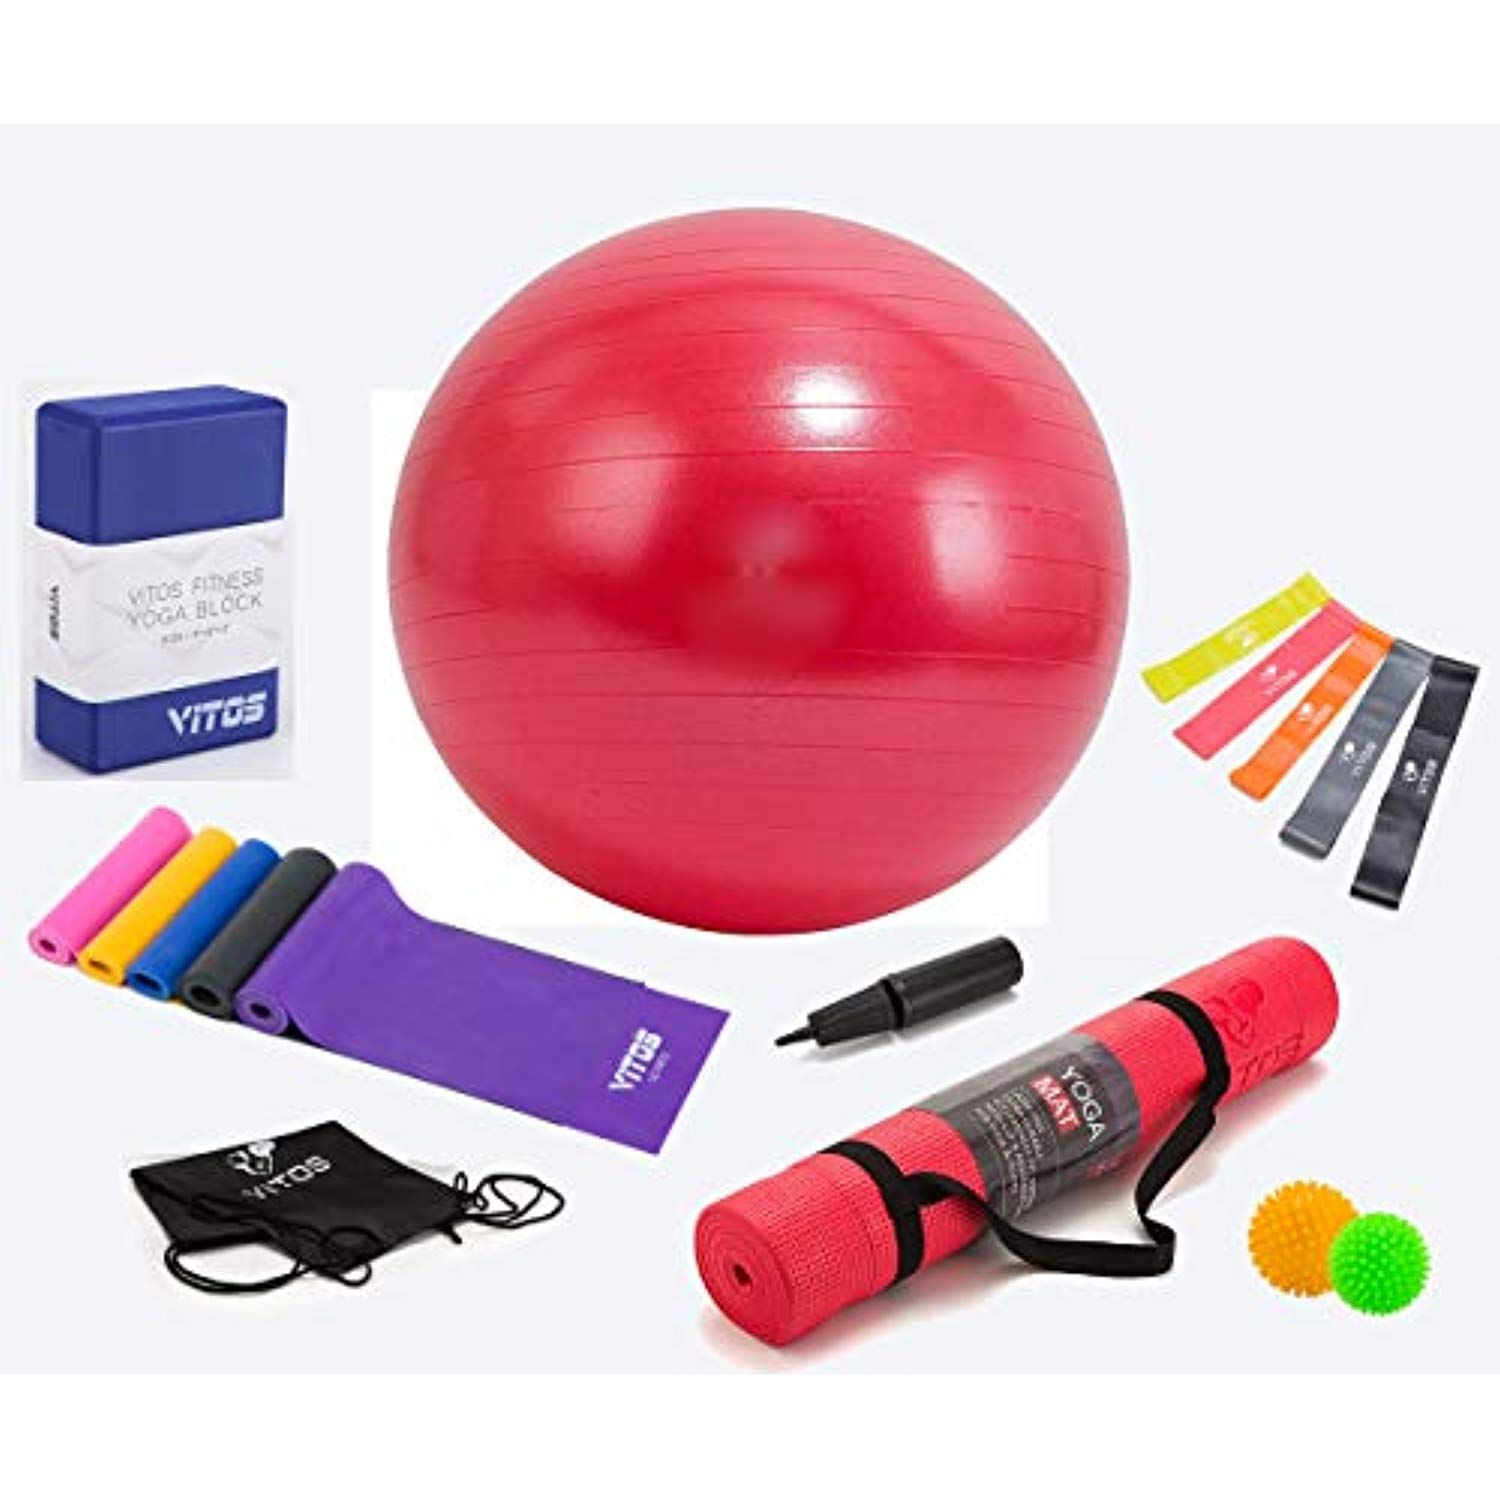 Hongville Vitos Yoga Set Multi Piece Set Include 1 4 Thick Exercise Mat W Strap Yoga Foam Block 5 Yoga Band Ball Exercises Thick Exercise Mat Massage Ball